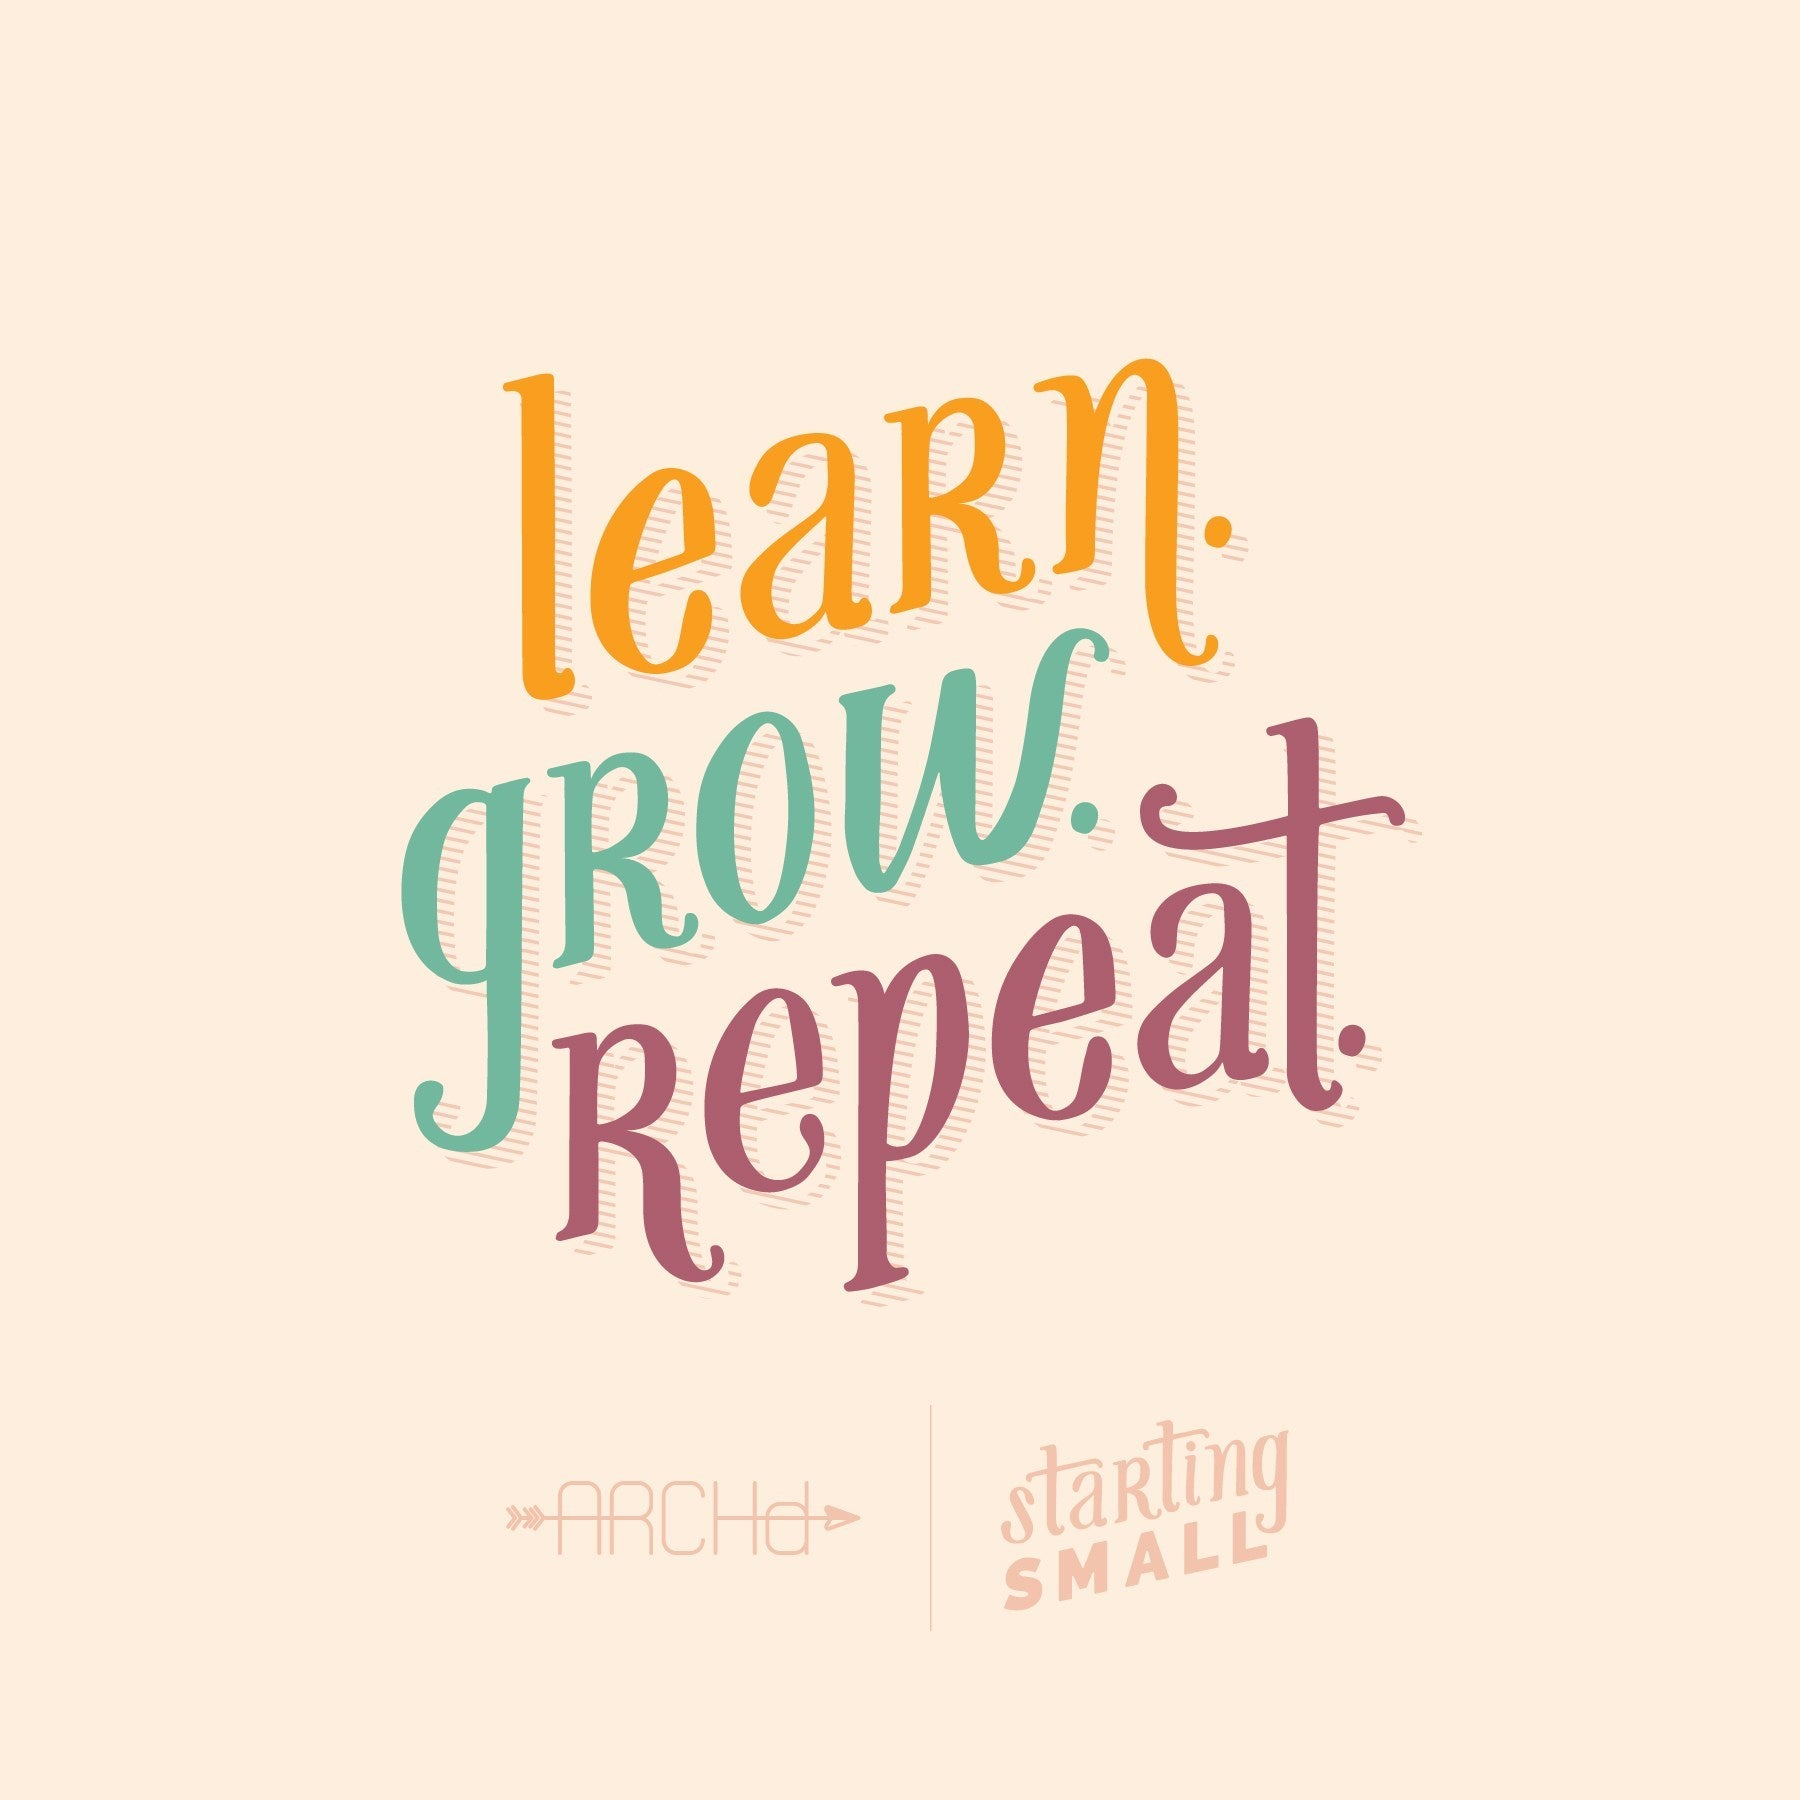 Learn Grow Repeat Starting Small a blog series by ARCHd about the adventures of starting a small business